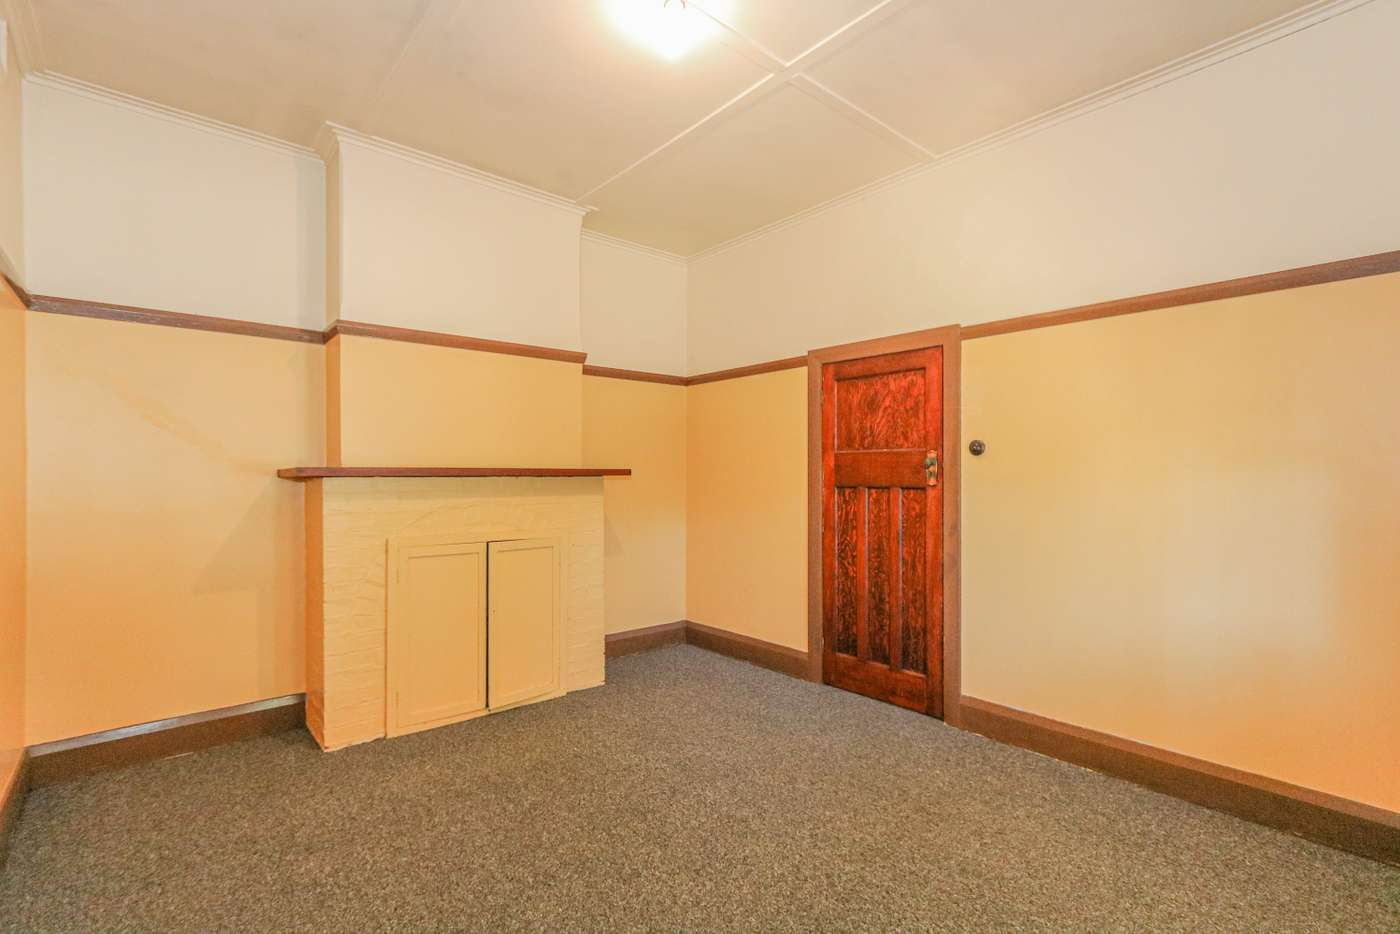 Sixth view of Homely house listing, 228 Stewart Street, Bathurst NSW 2795